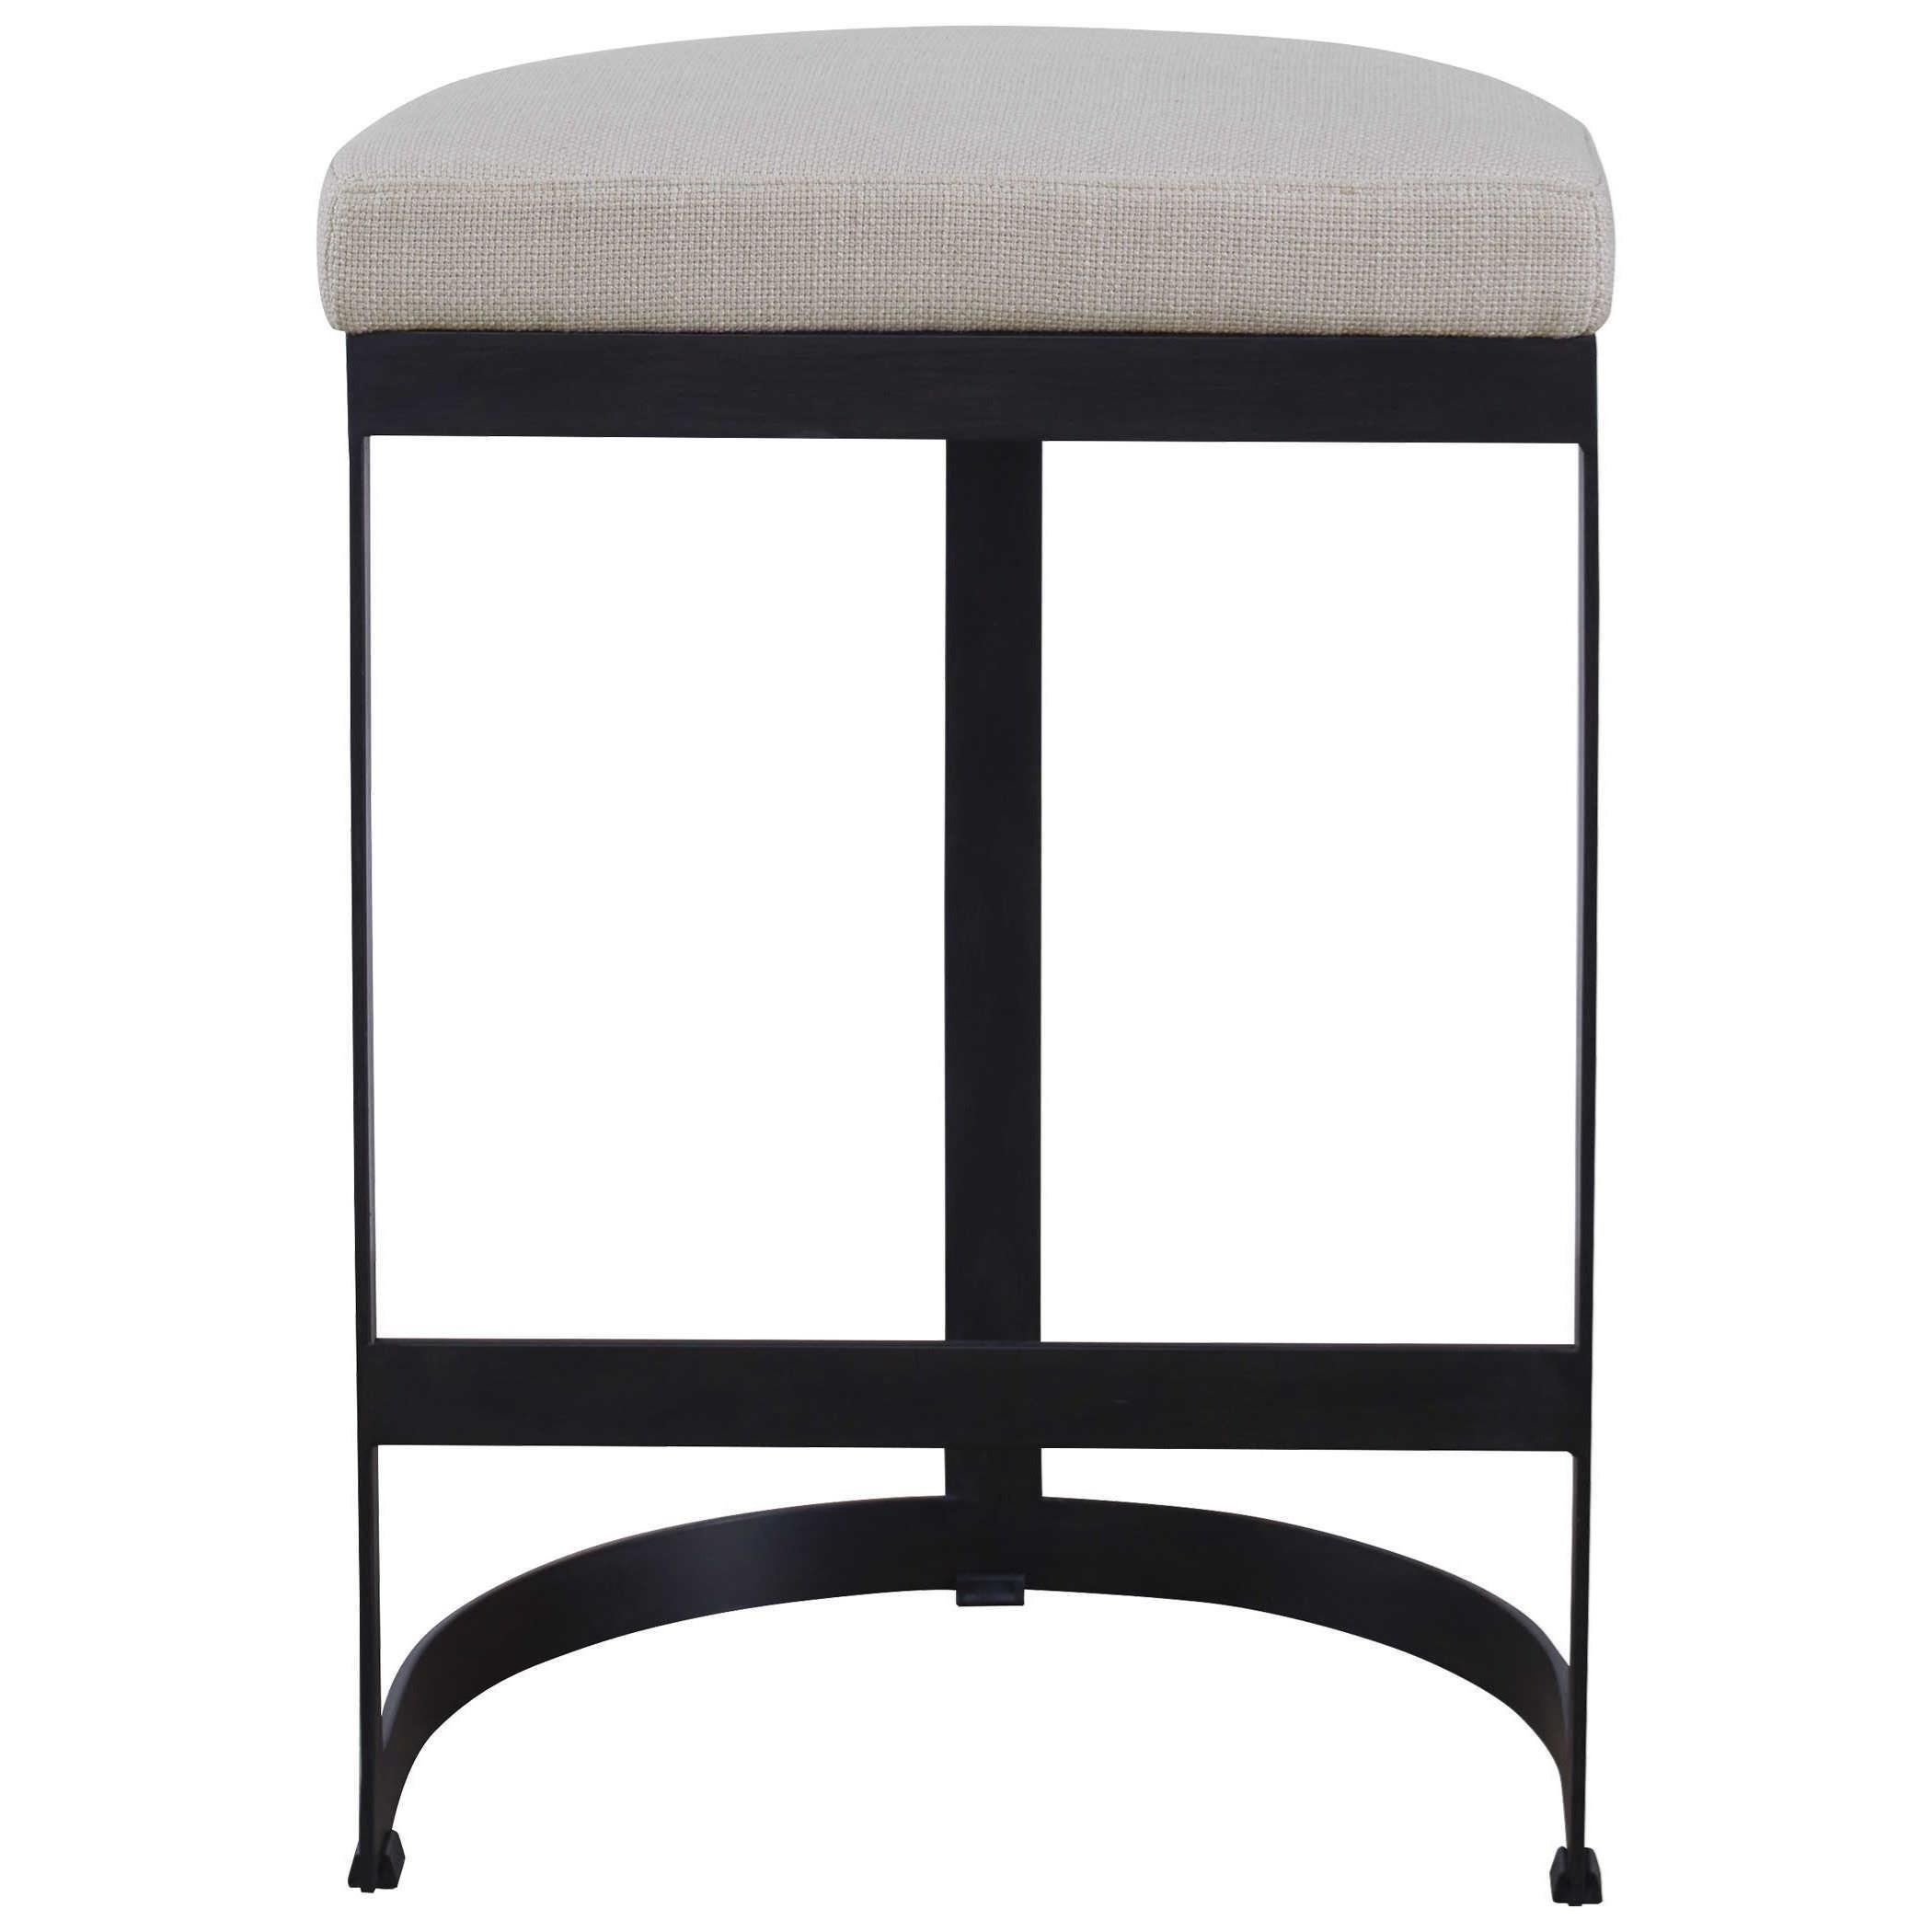 Accent Furniture - Stools Ivanna Black Iron Counter Stool by Uttermost at O'Dunk & O'Bright Furniture